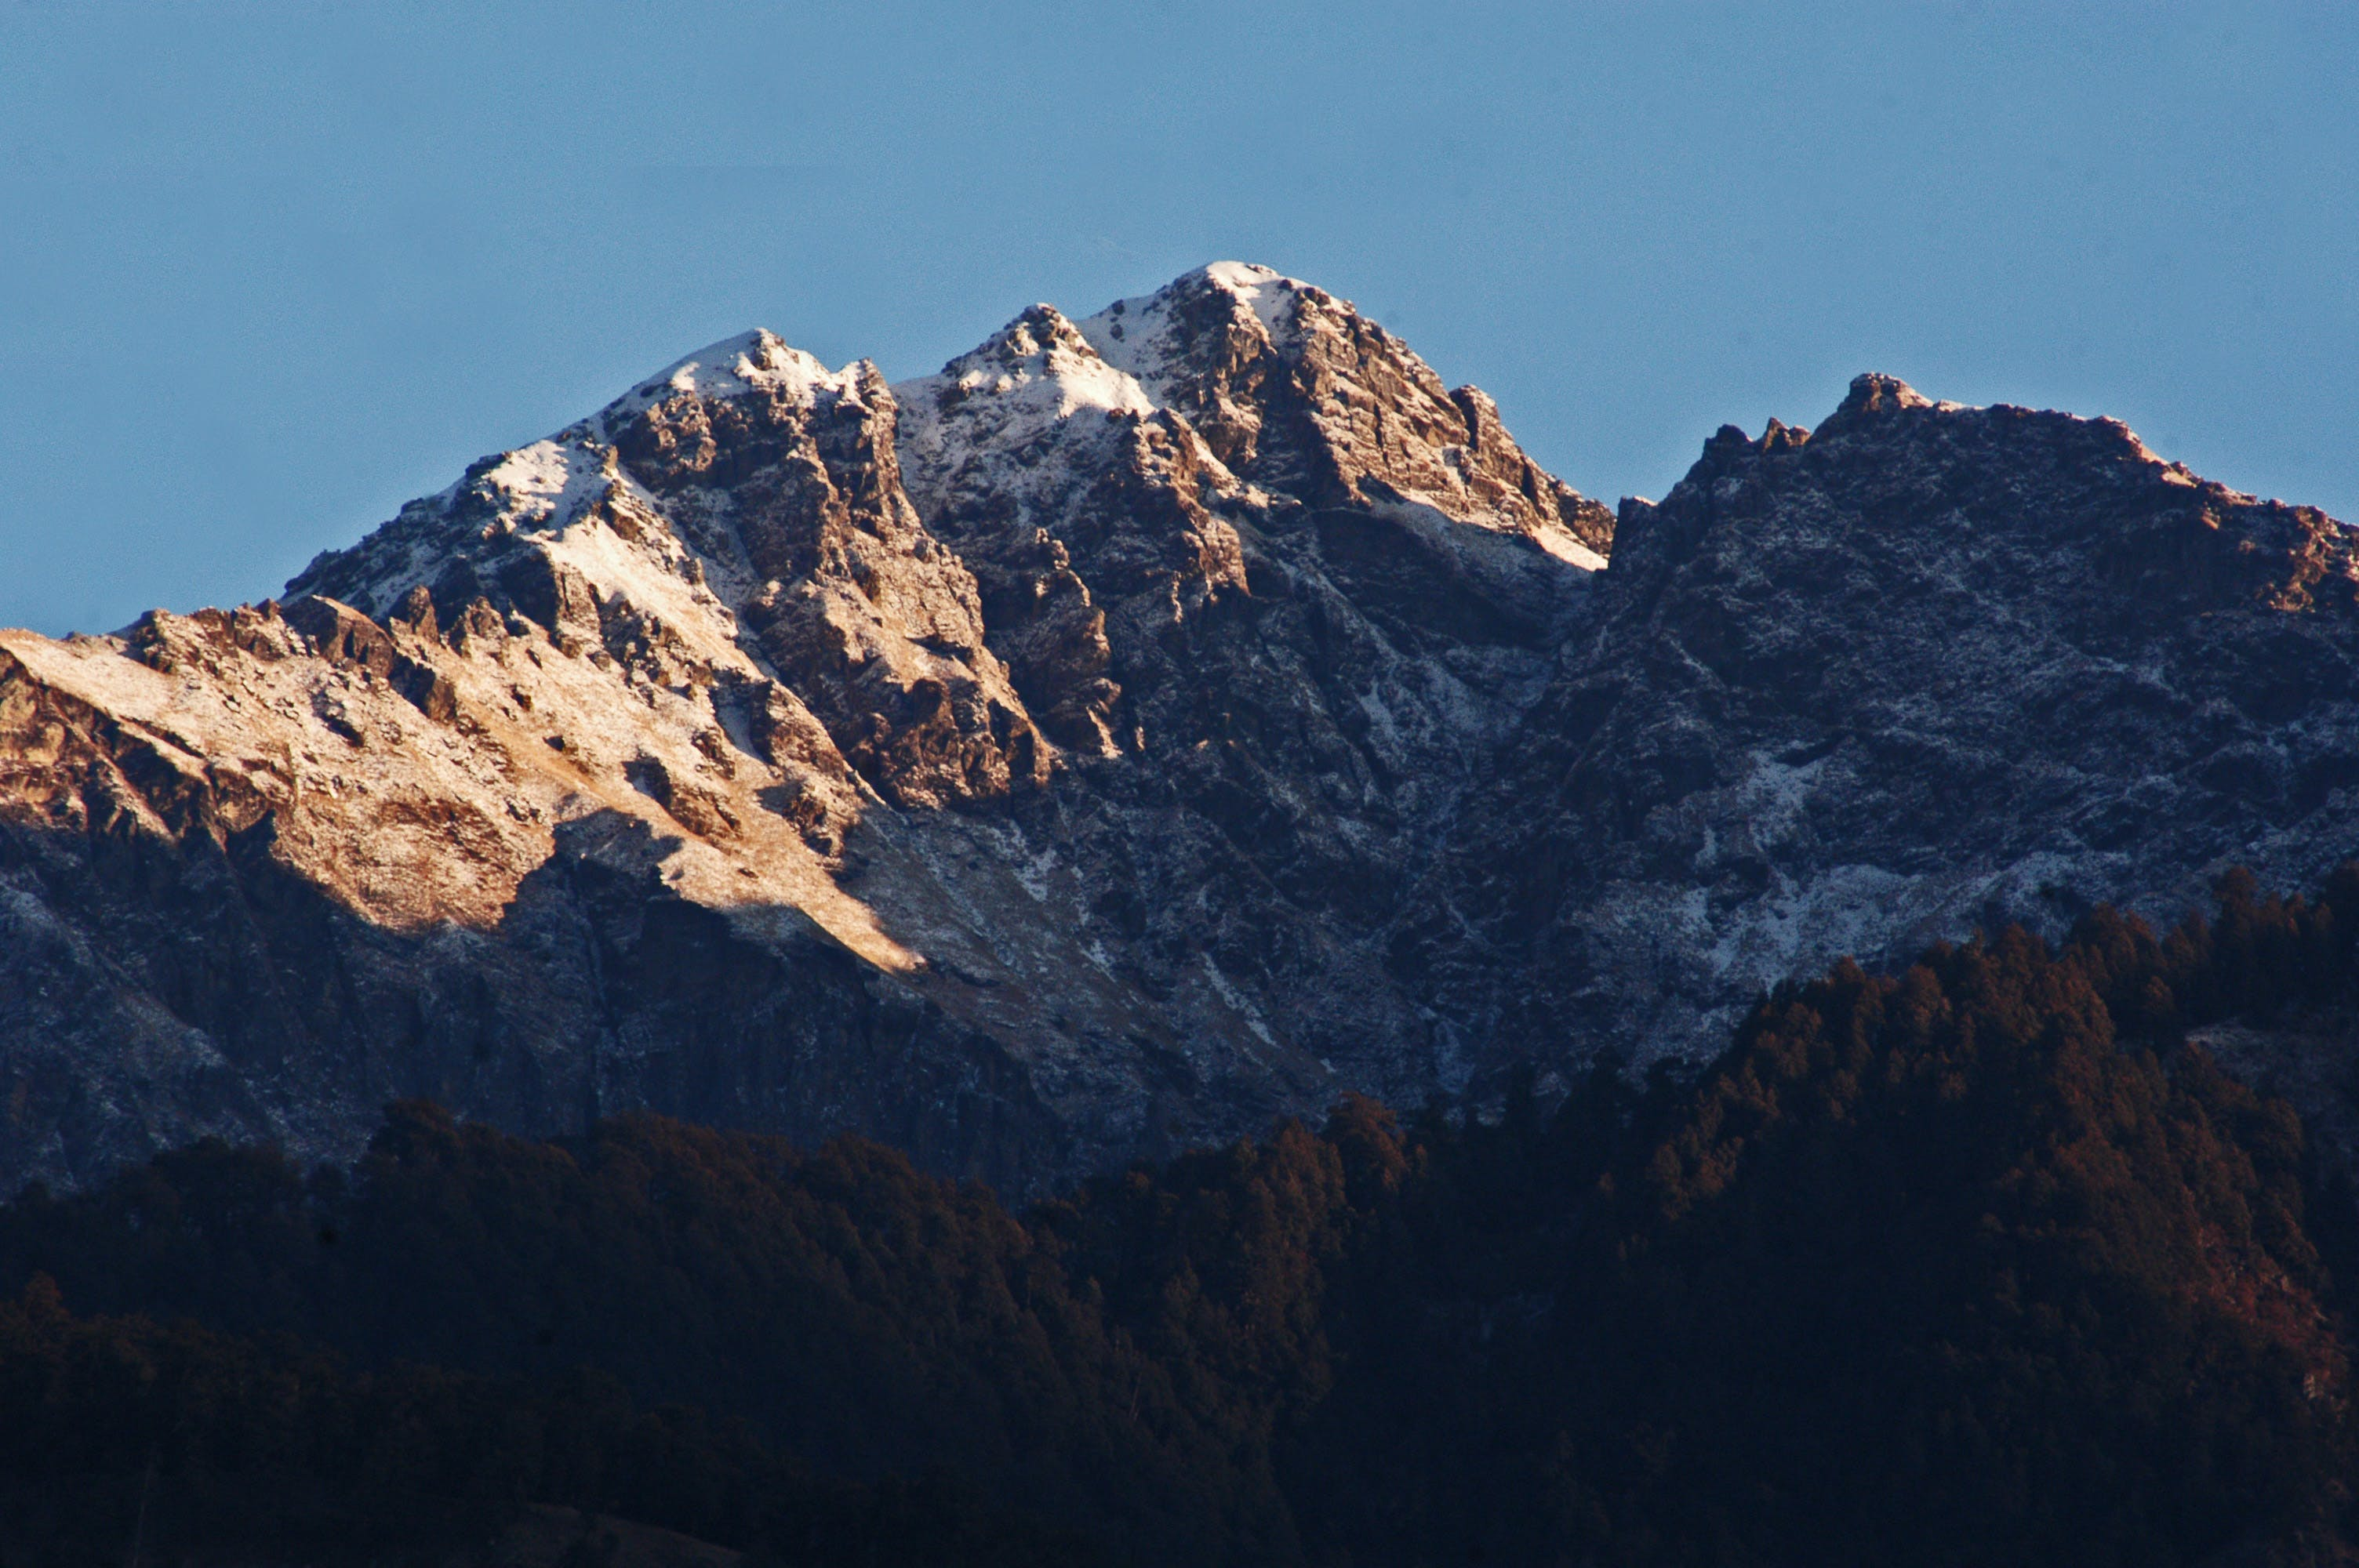 Brown and White Mountain Under Clear Sky